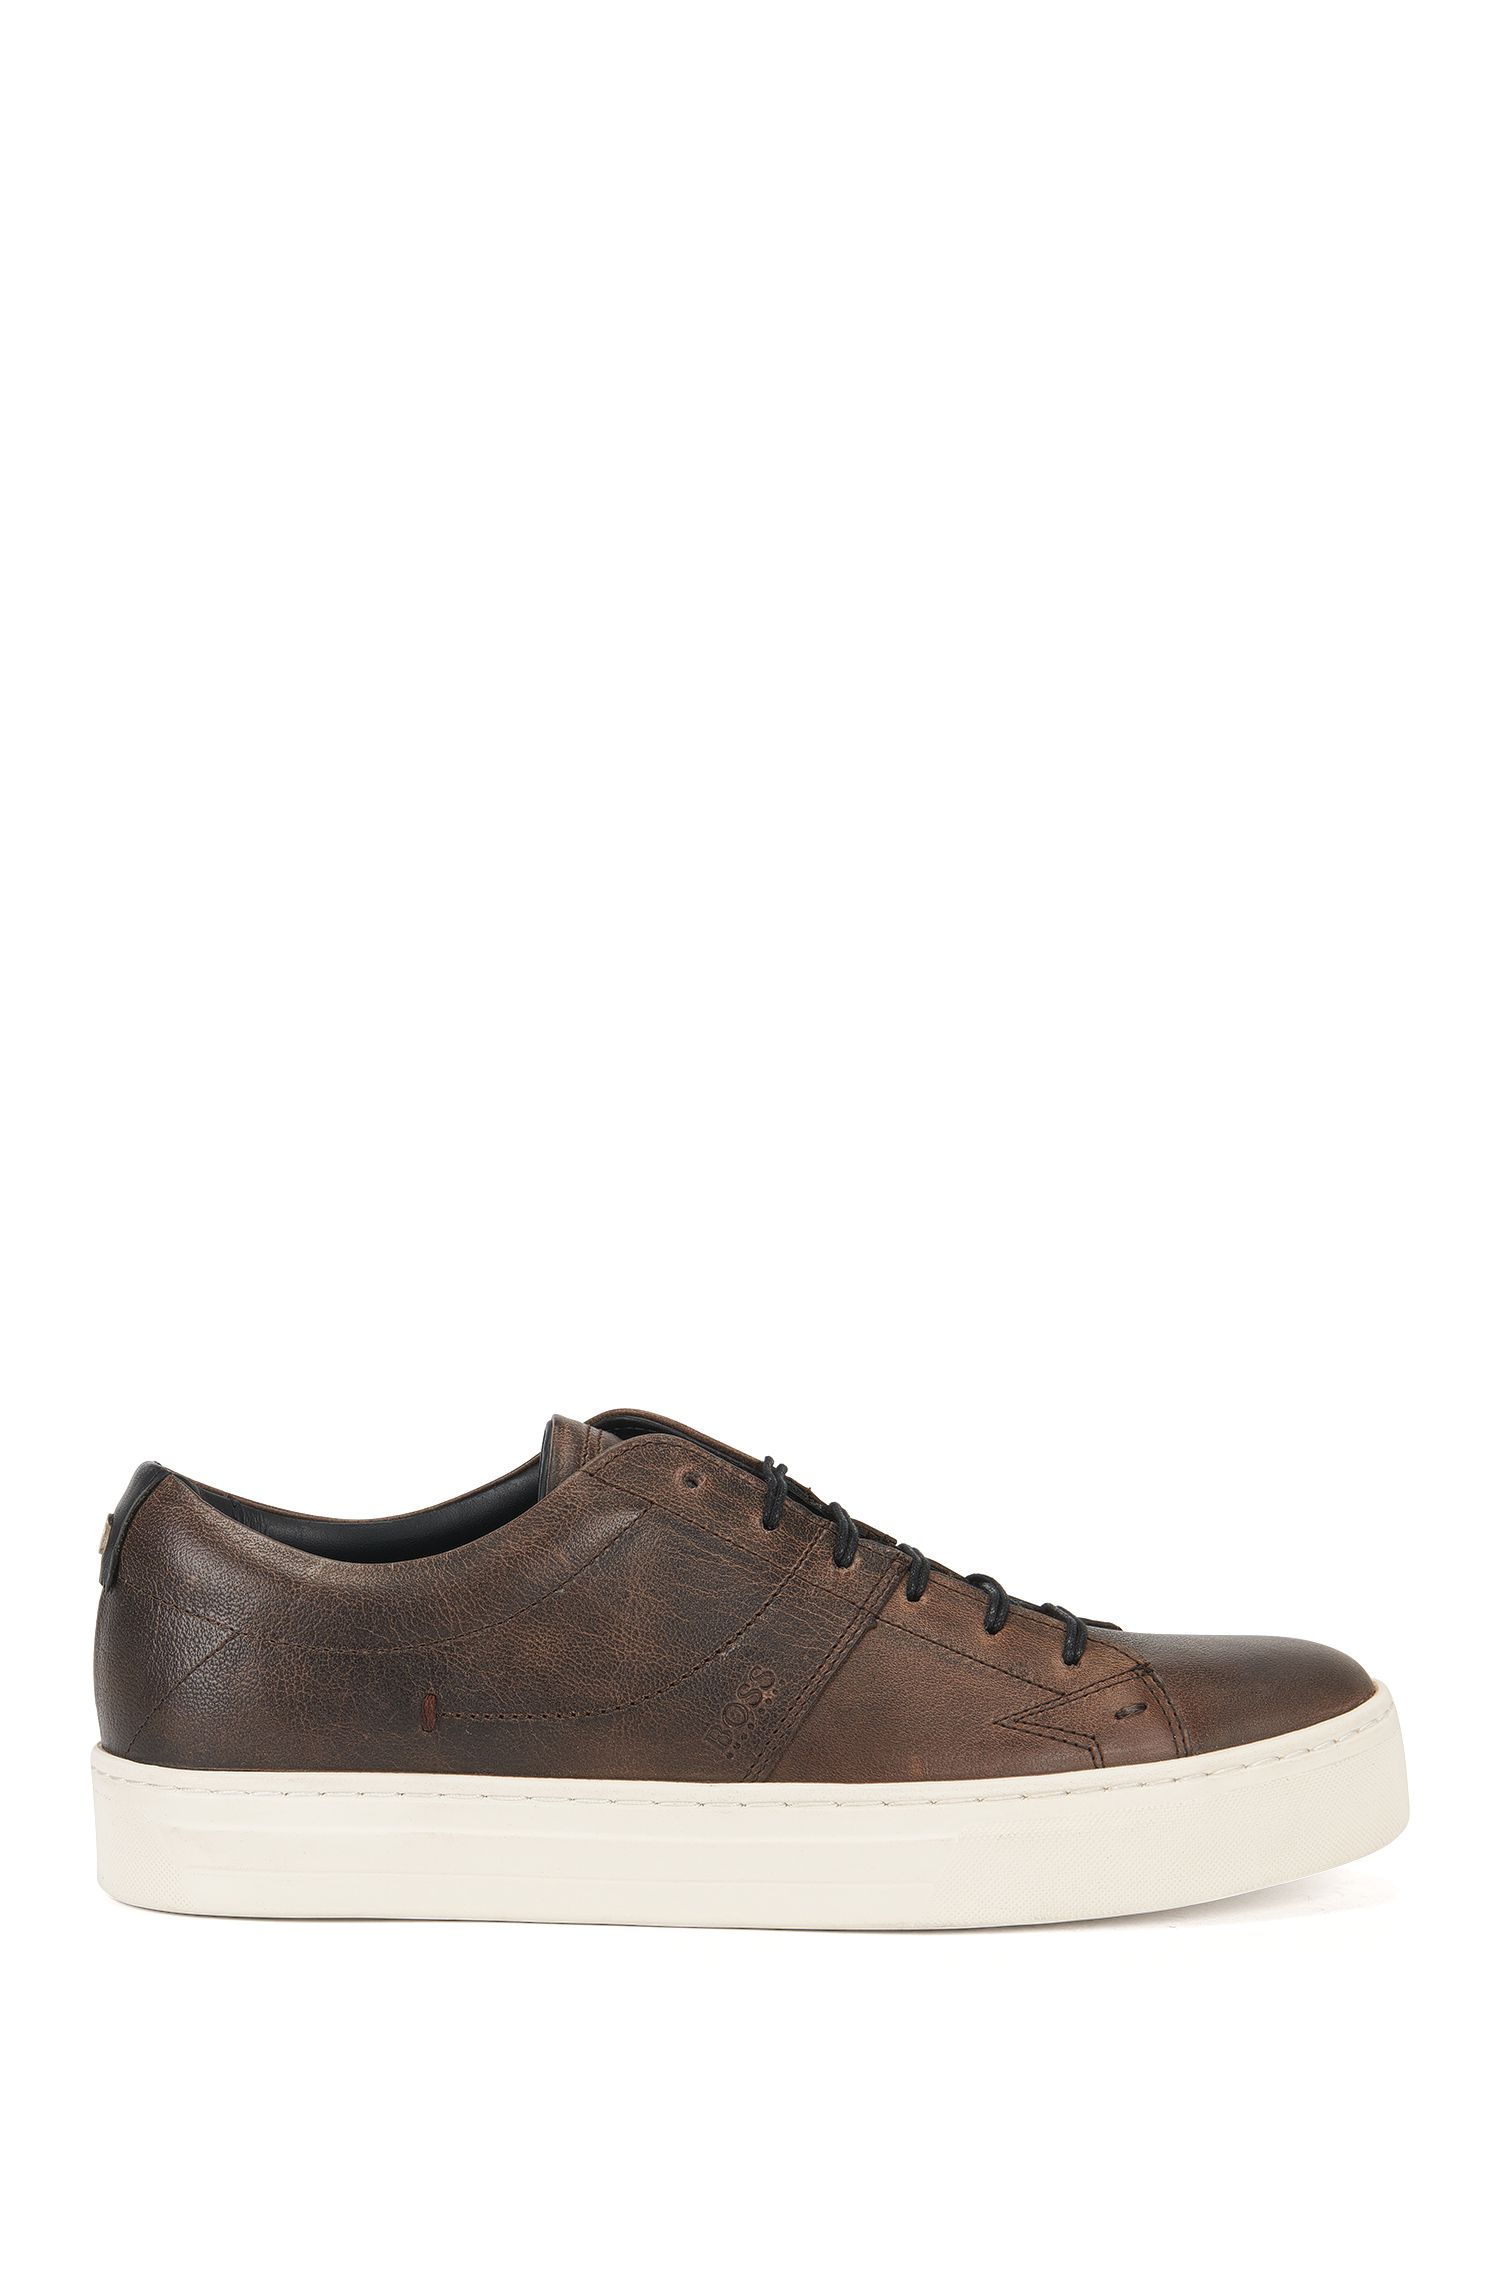 Leather Tennis Shoe | Noir Tenn Pp